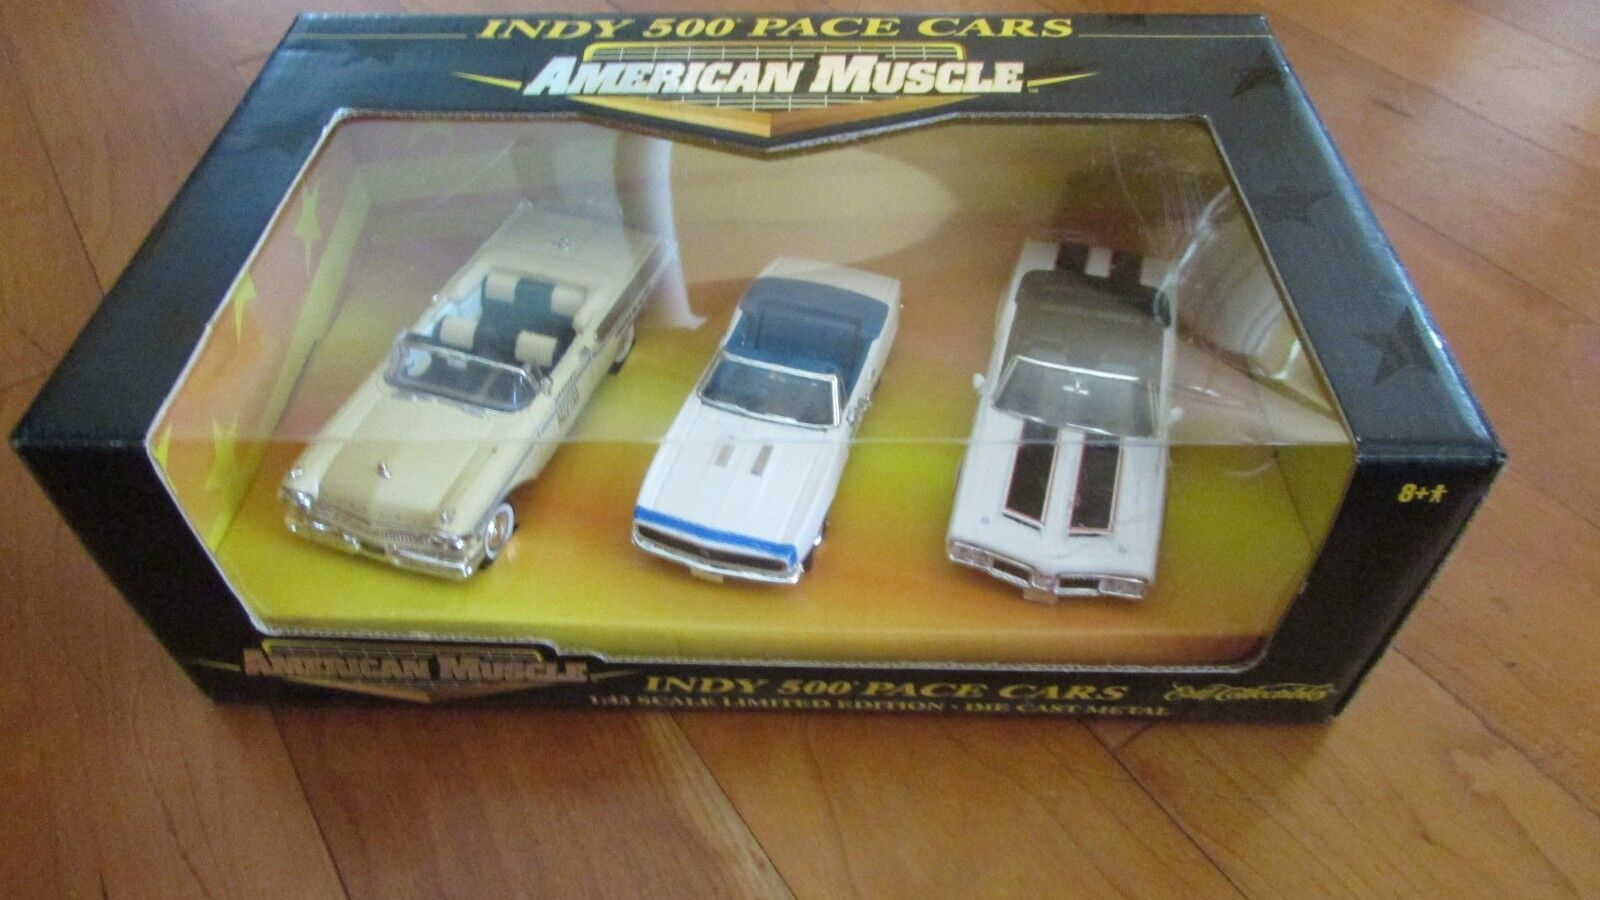 Ertl 1 43 American Muscle Indy 500 Pace cars 3 voiture Set Camaro Mercury Oldsmobile